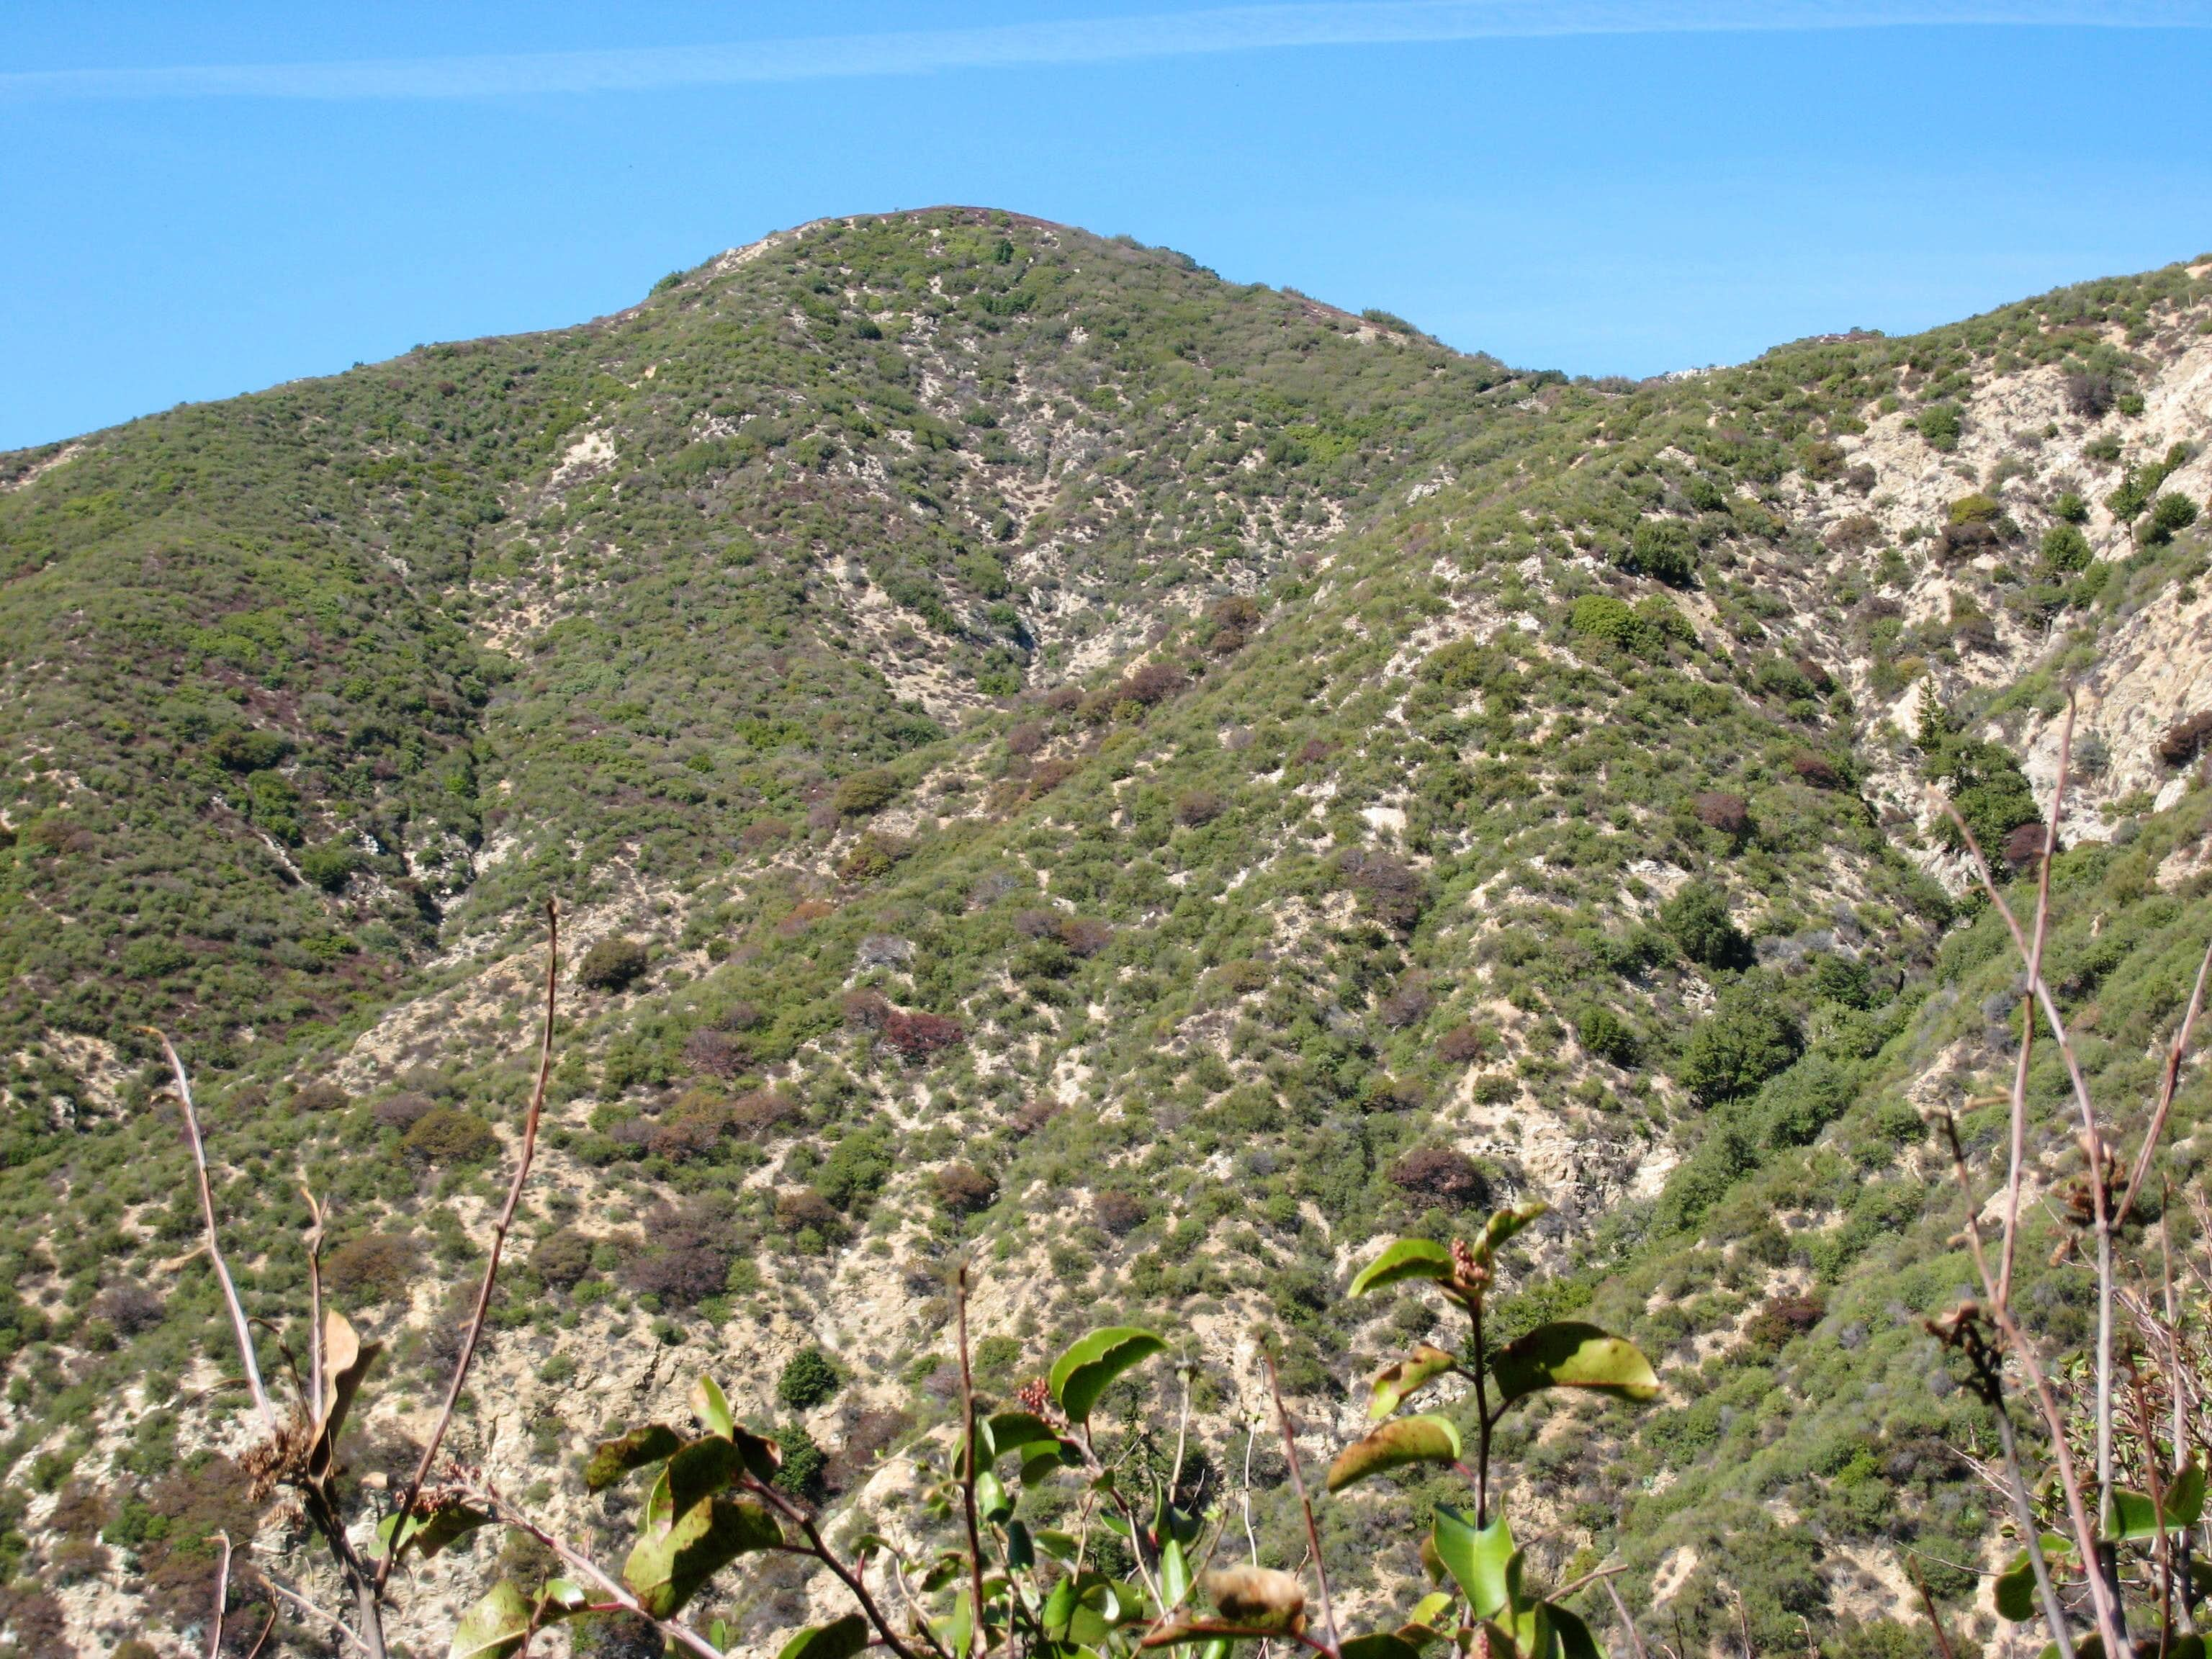 Hastings Peak